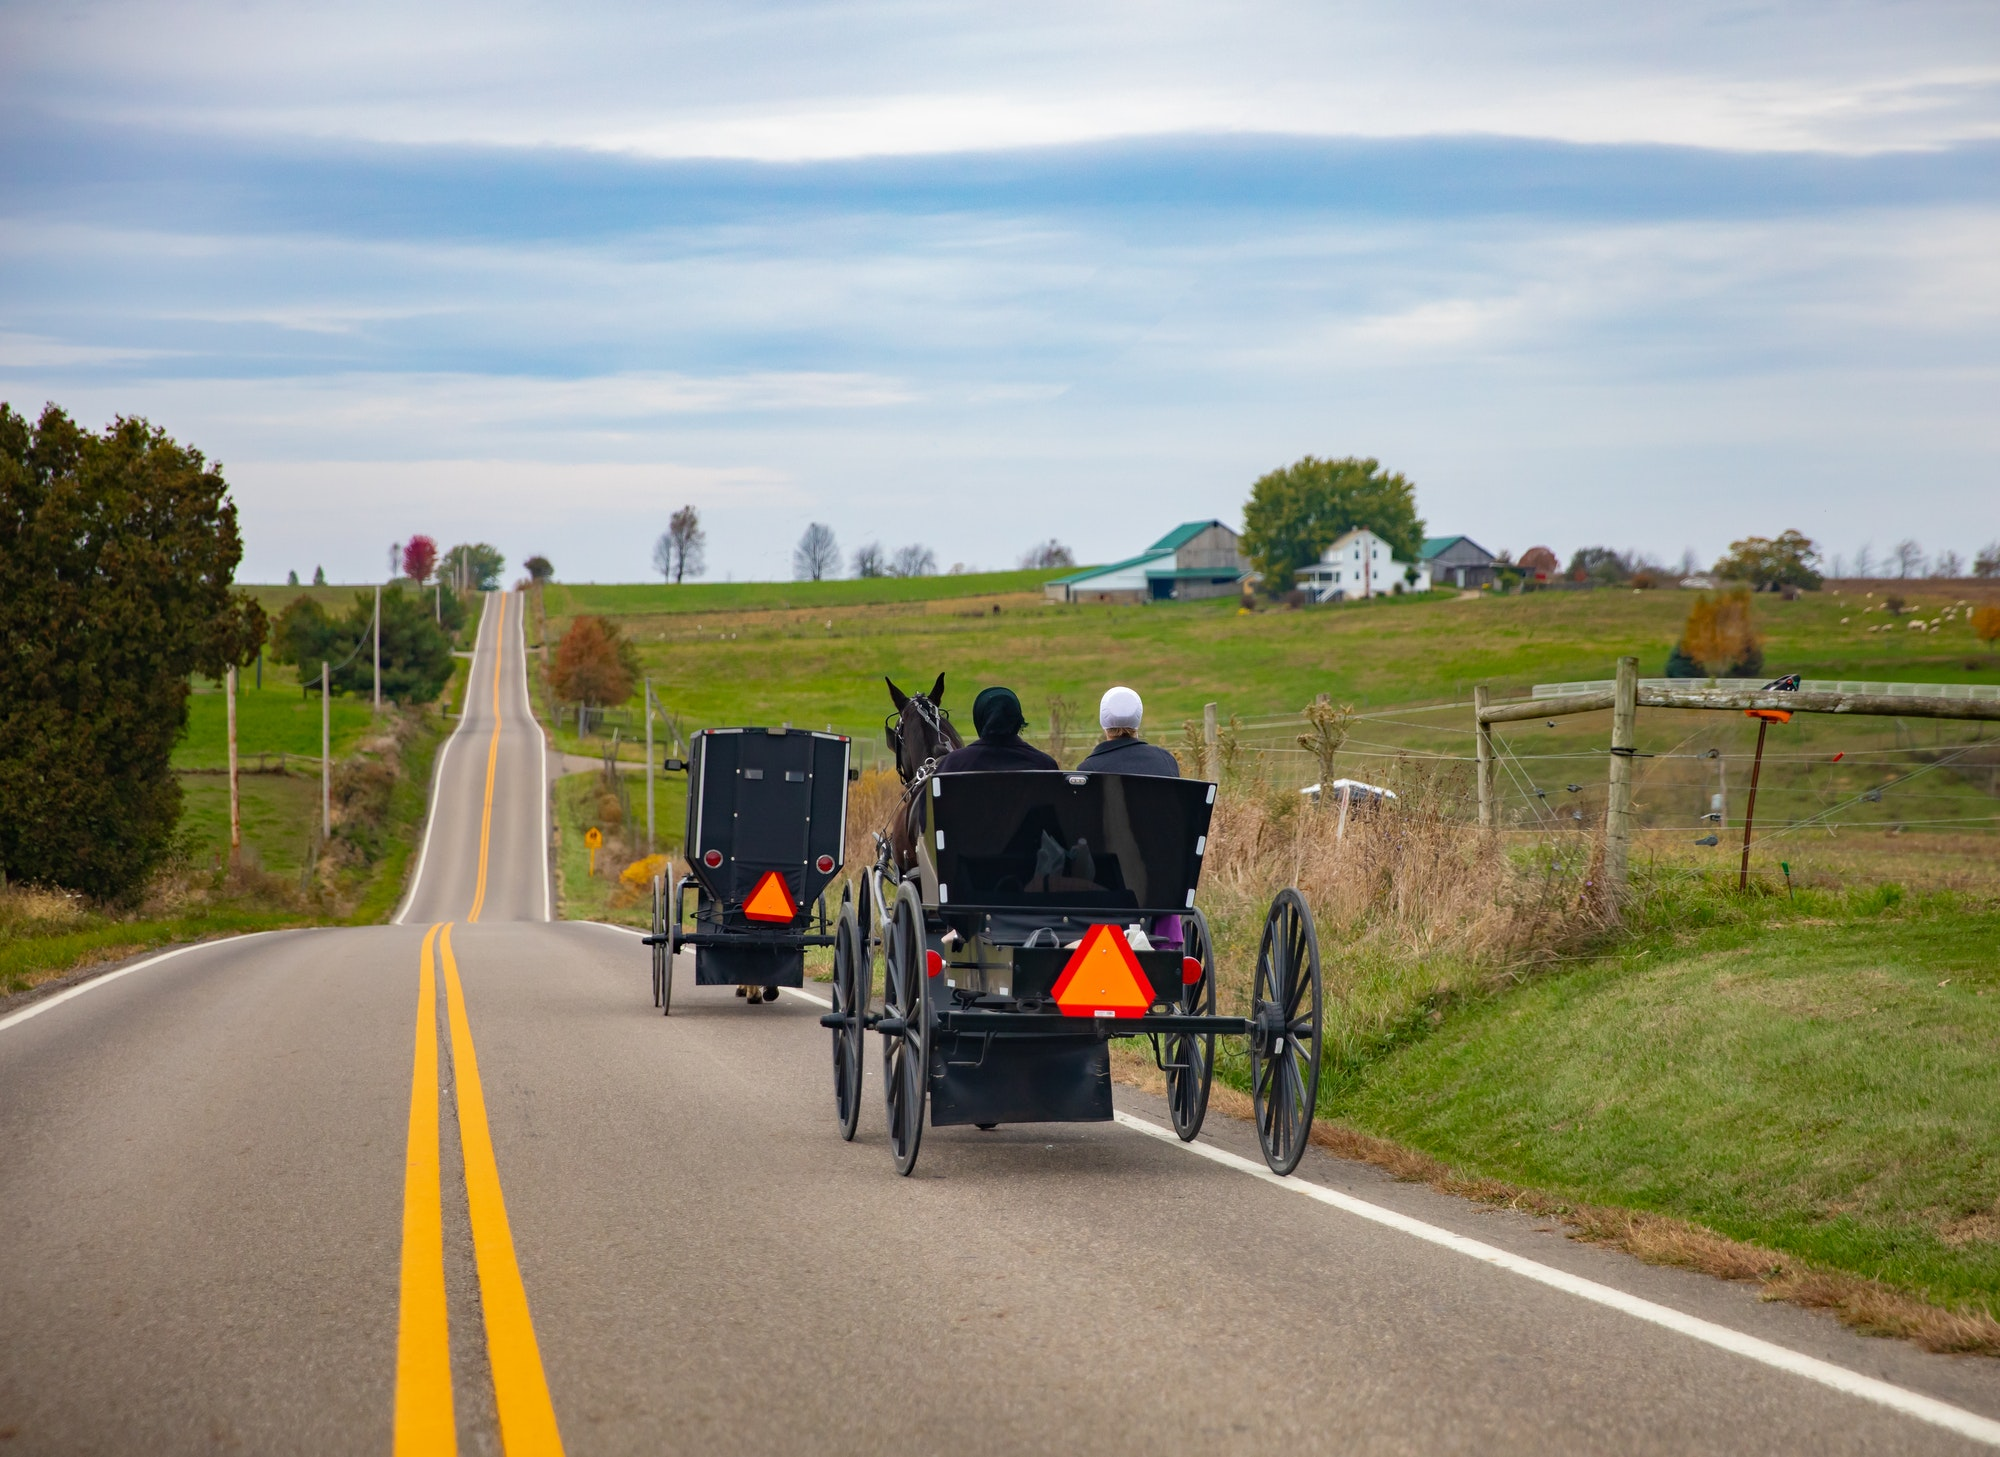 Rolling Country road in rural Ohio with two Amish black buggies with horses and green farmland